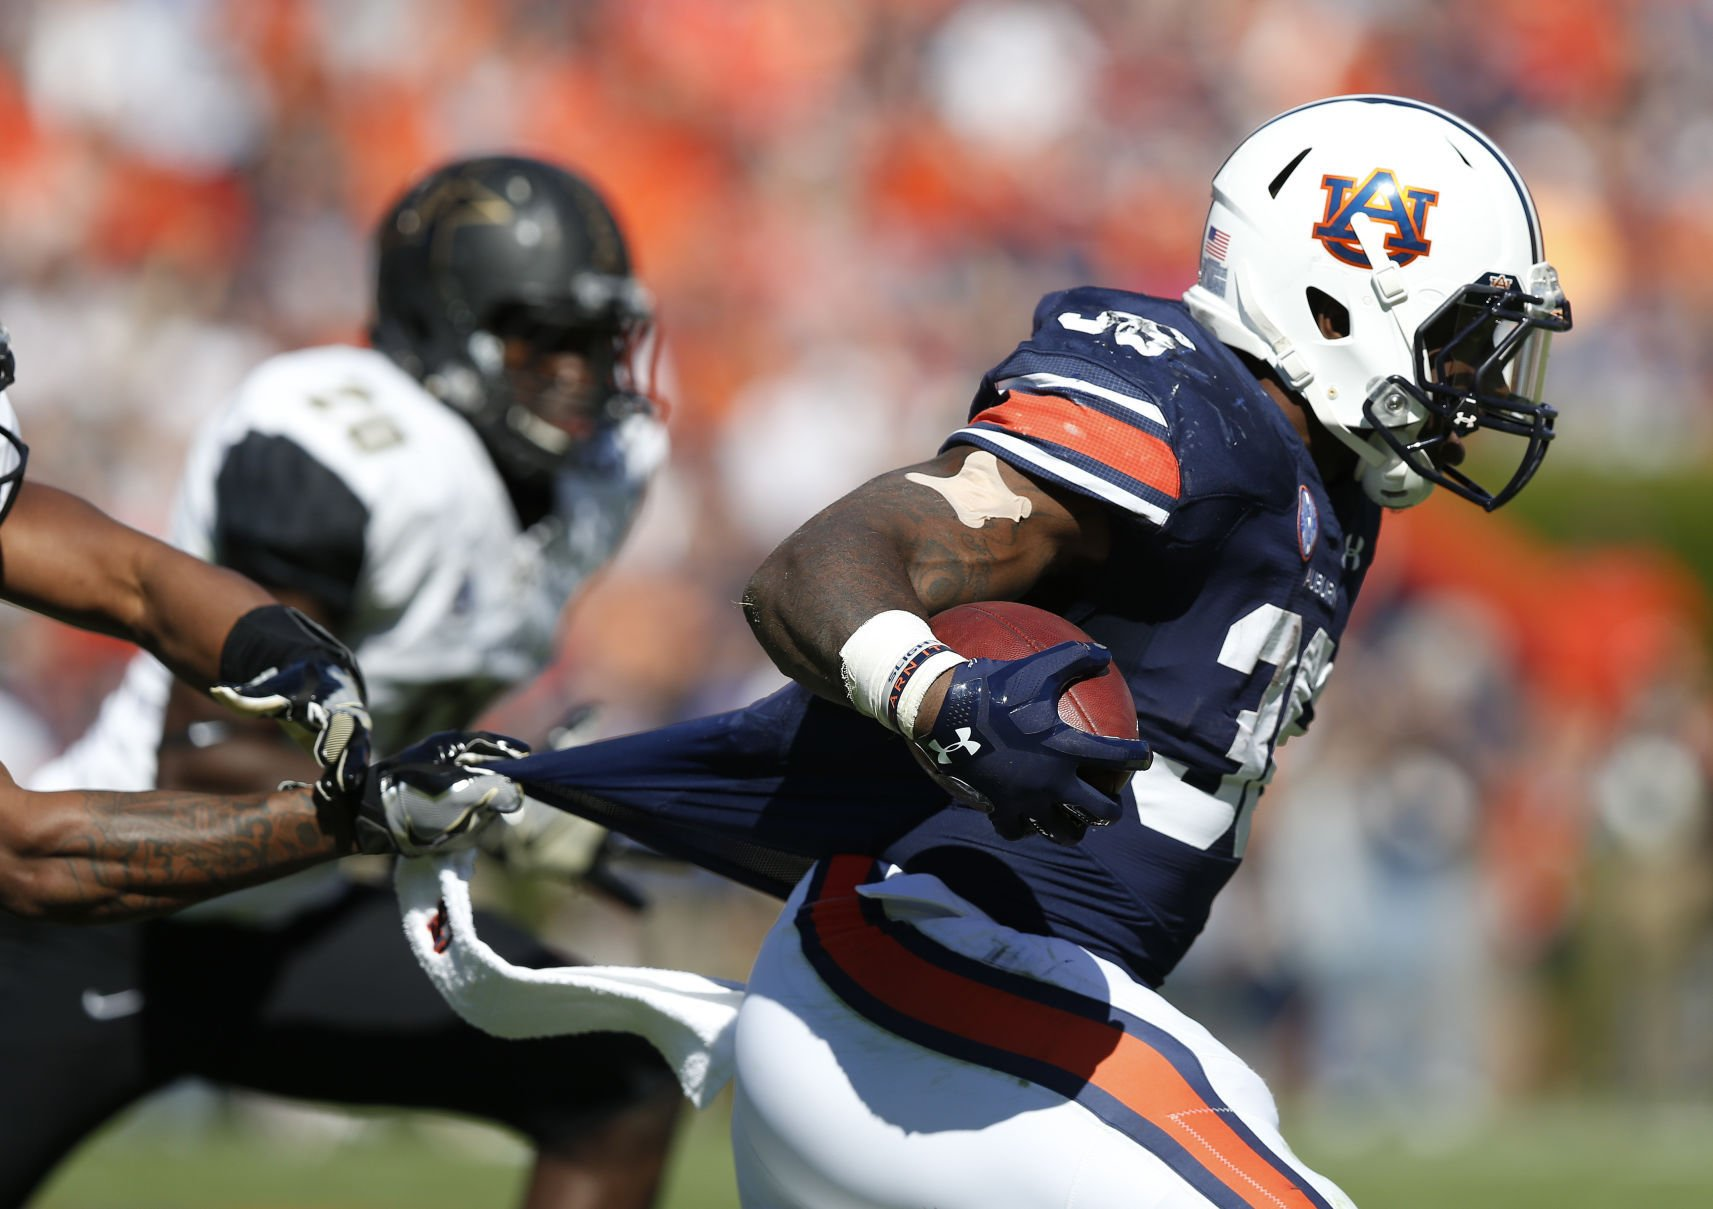 Auburn crushes Mississippi State 49-10: 3 takeaways